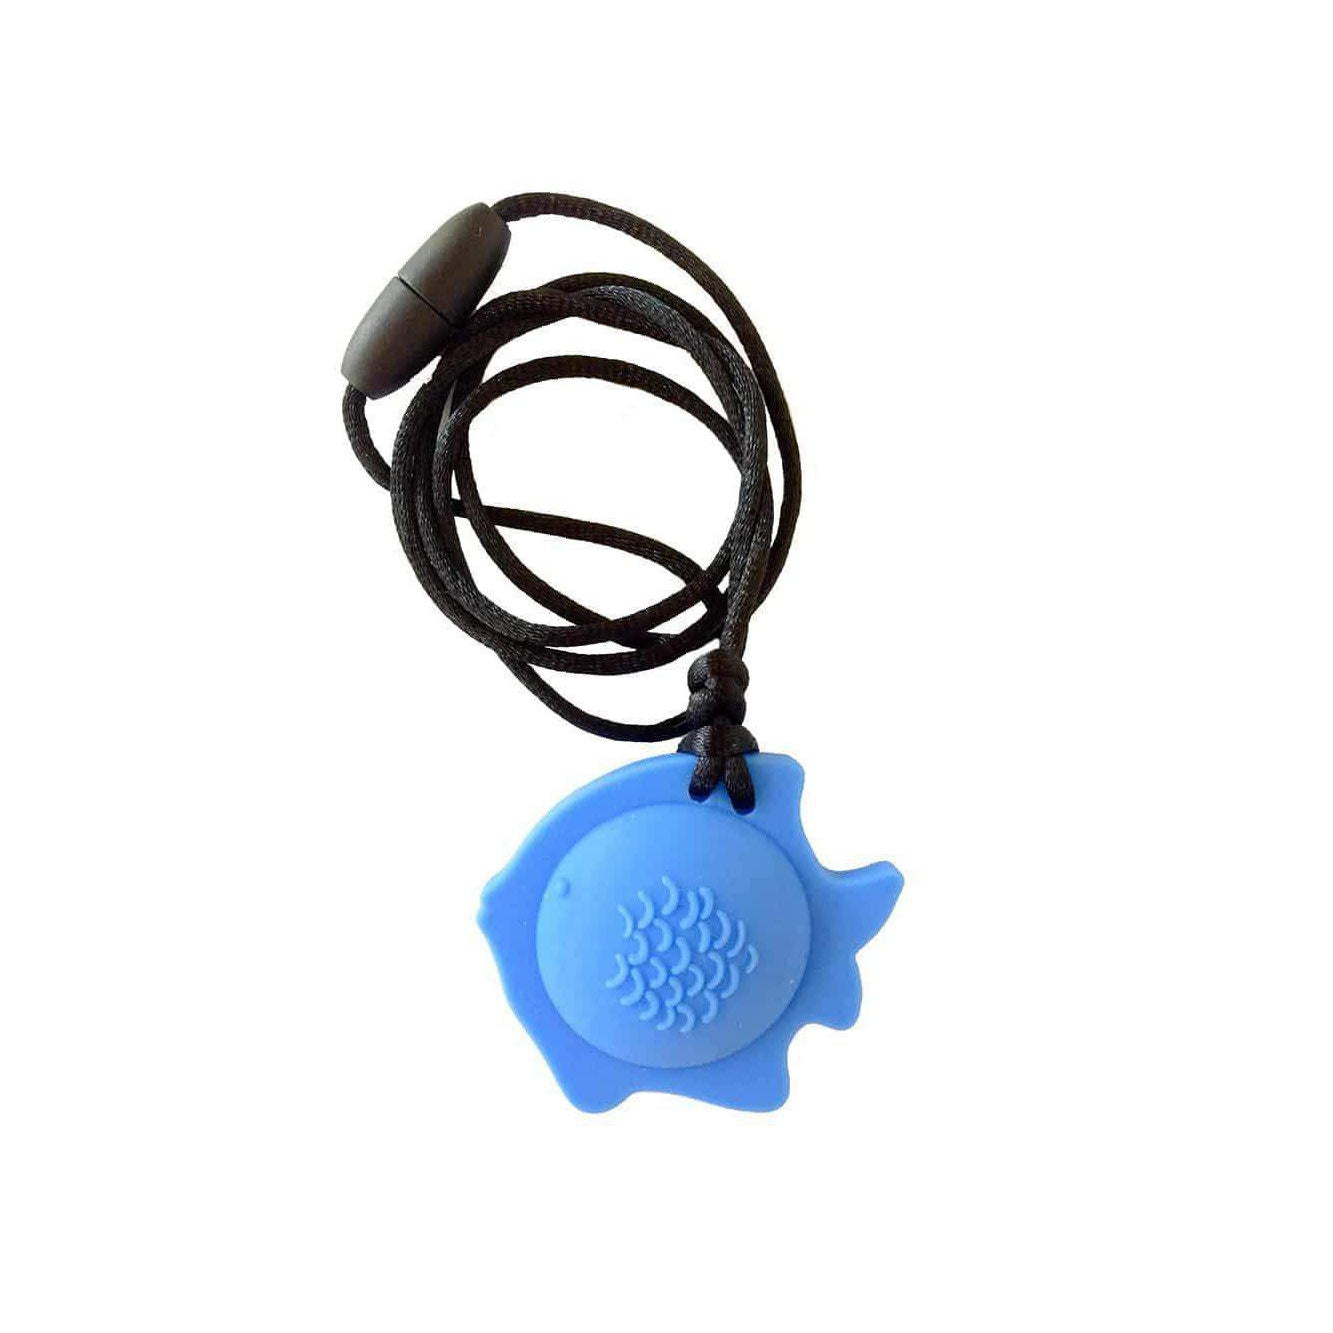 Fish Chew Pendant With Breakaway Clasp Necklace- Sky Blue Color